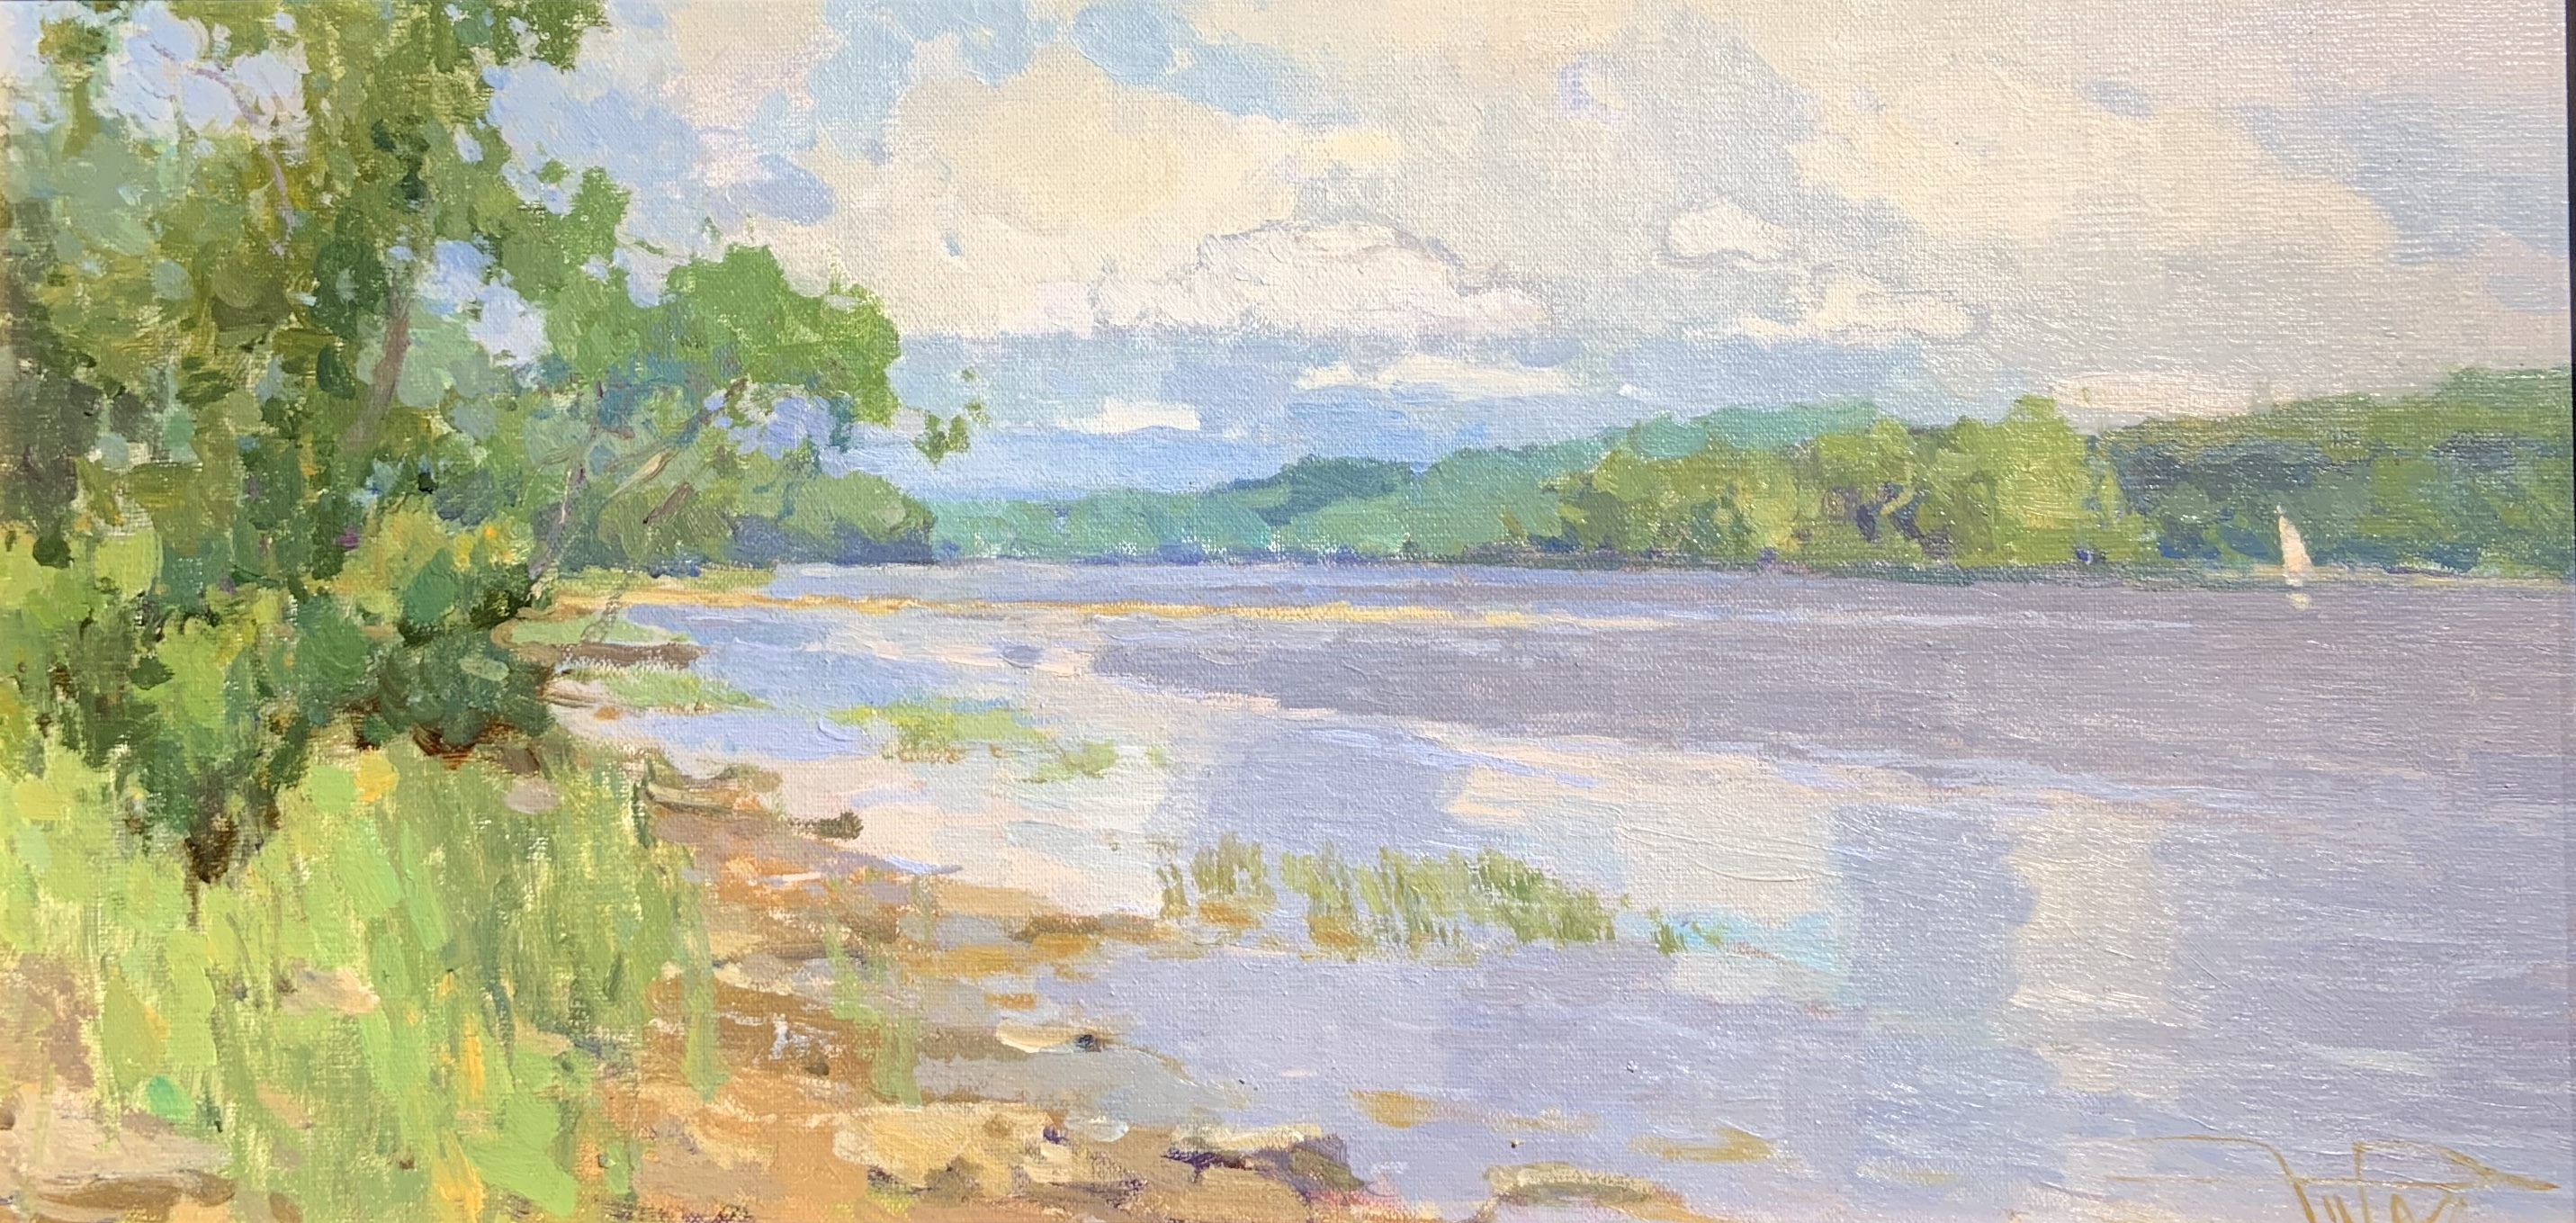 Breeze Over Water, oil 8x16 $1600